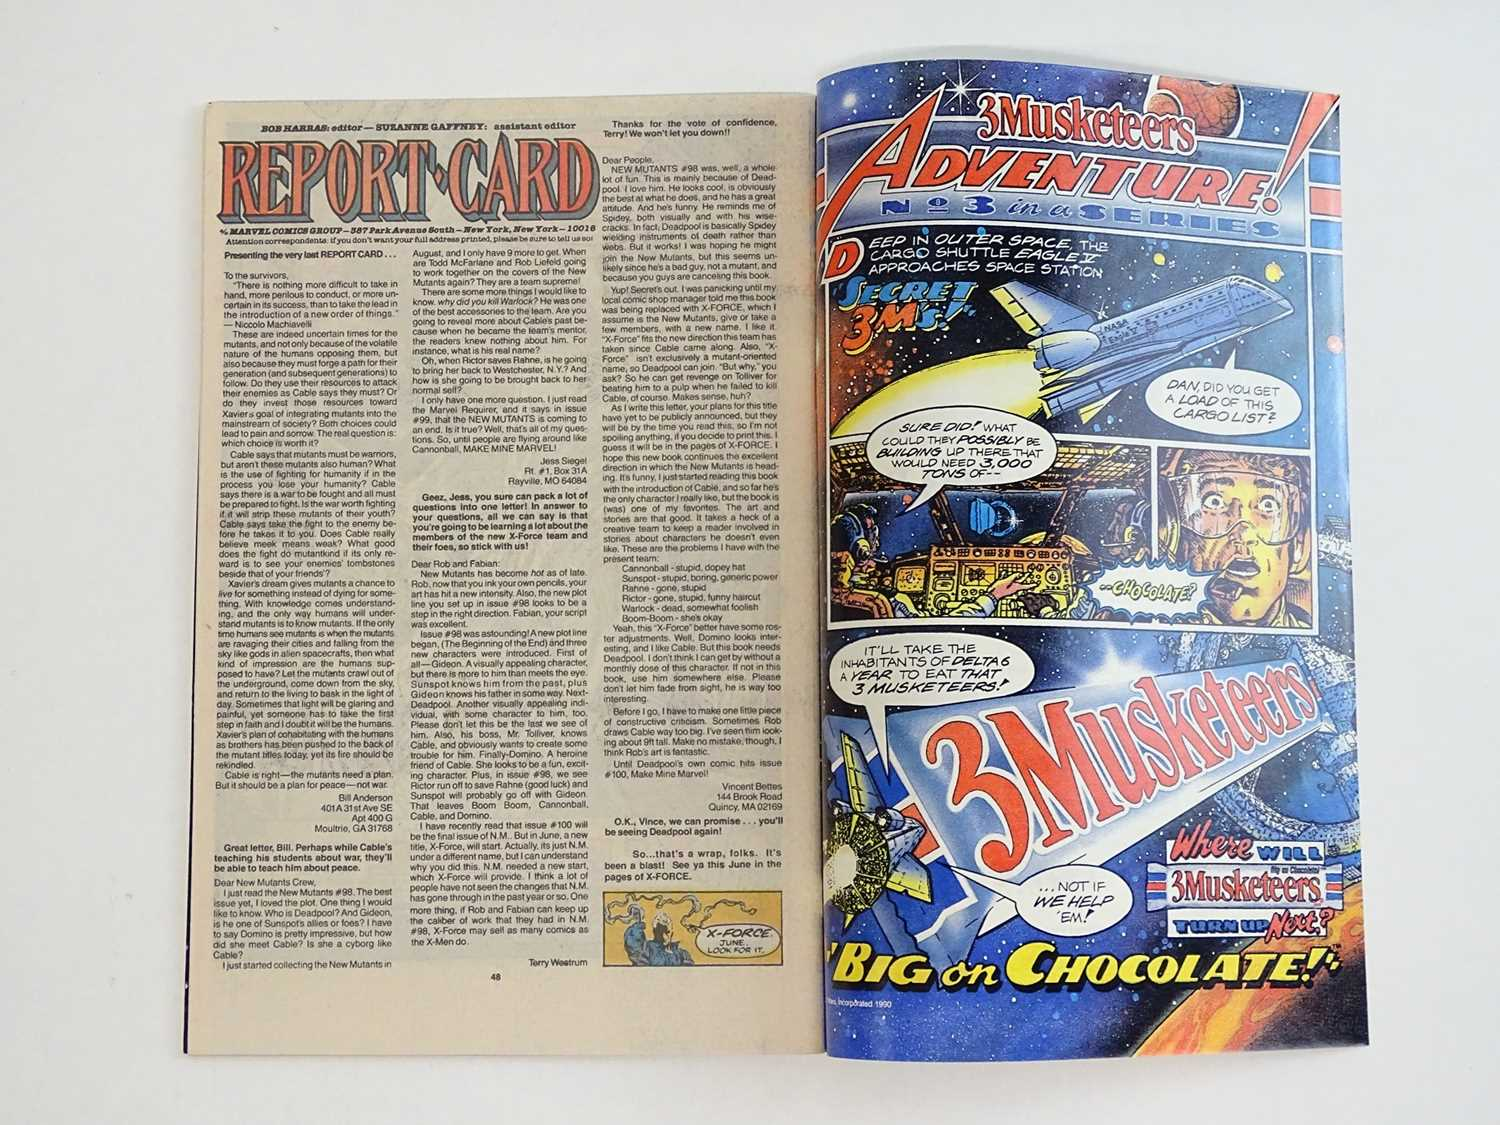 NEW MUTANTS #100 - (1991 - MARVEL) - First appearance of X-Force + Last Issue of the Title - Rob - Image 4 of 9